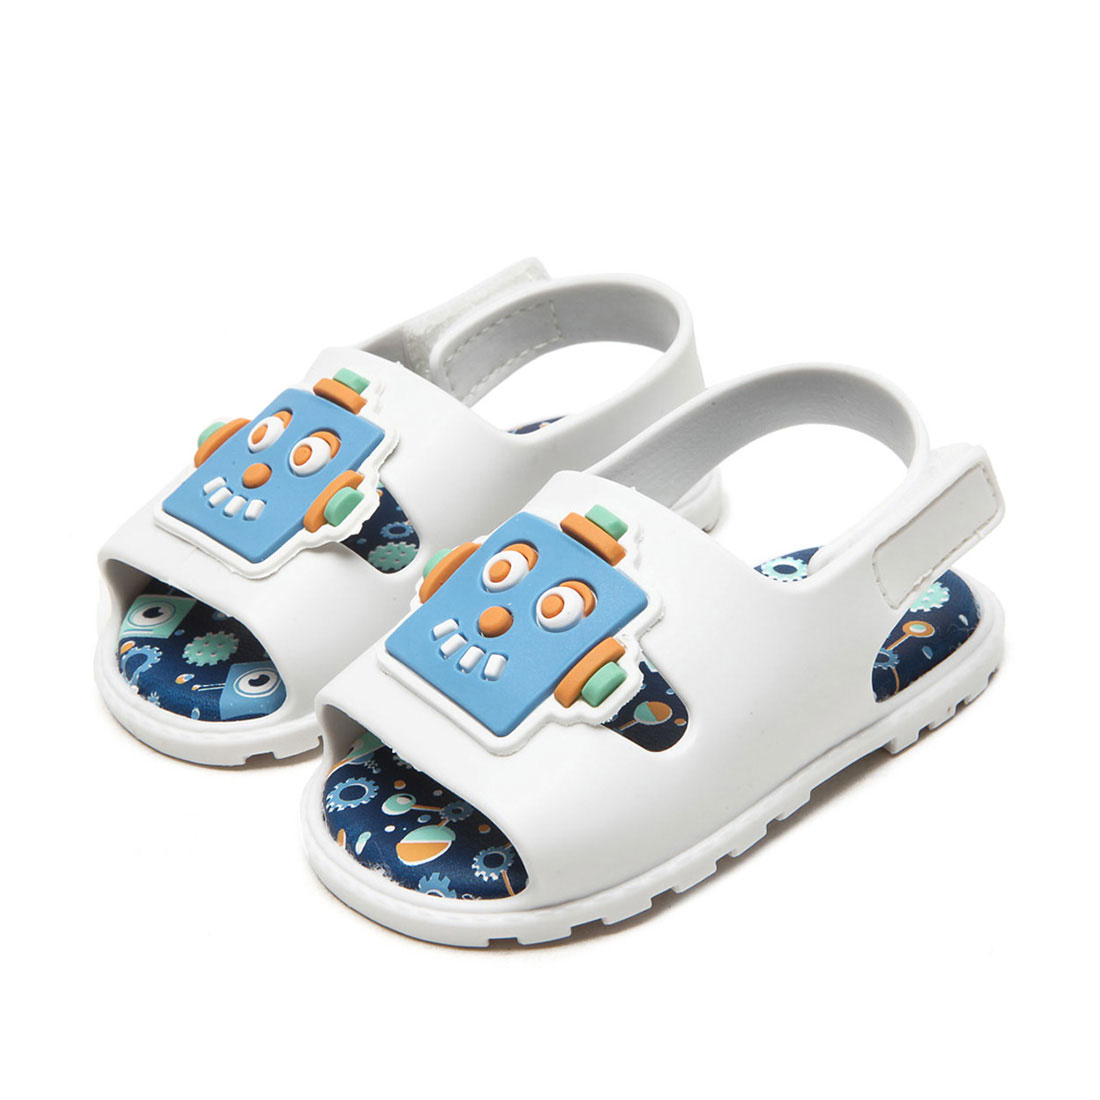 Cut plastic dongguan factory baby sandal children's shoes for boys CS2078